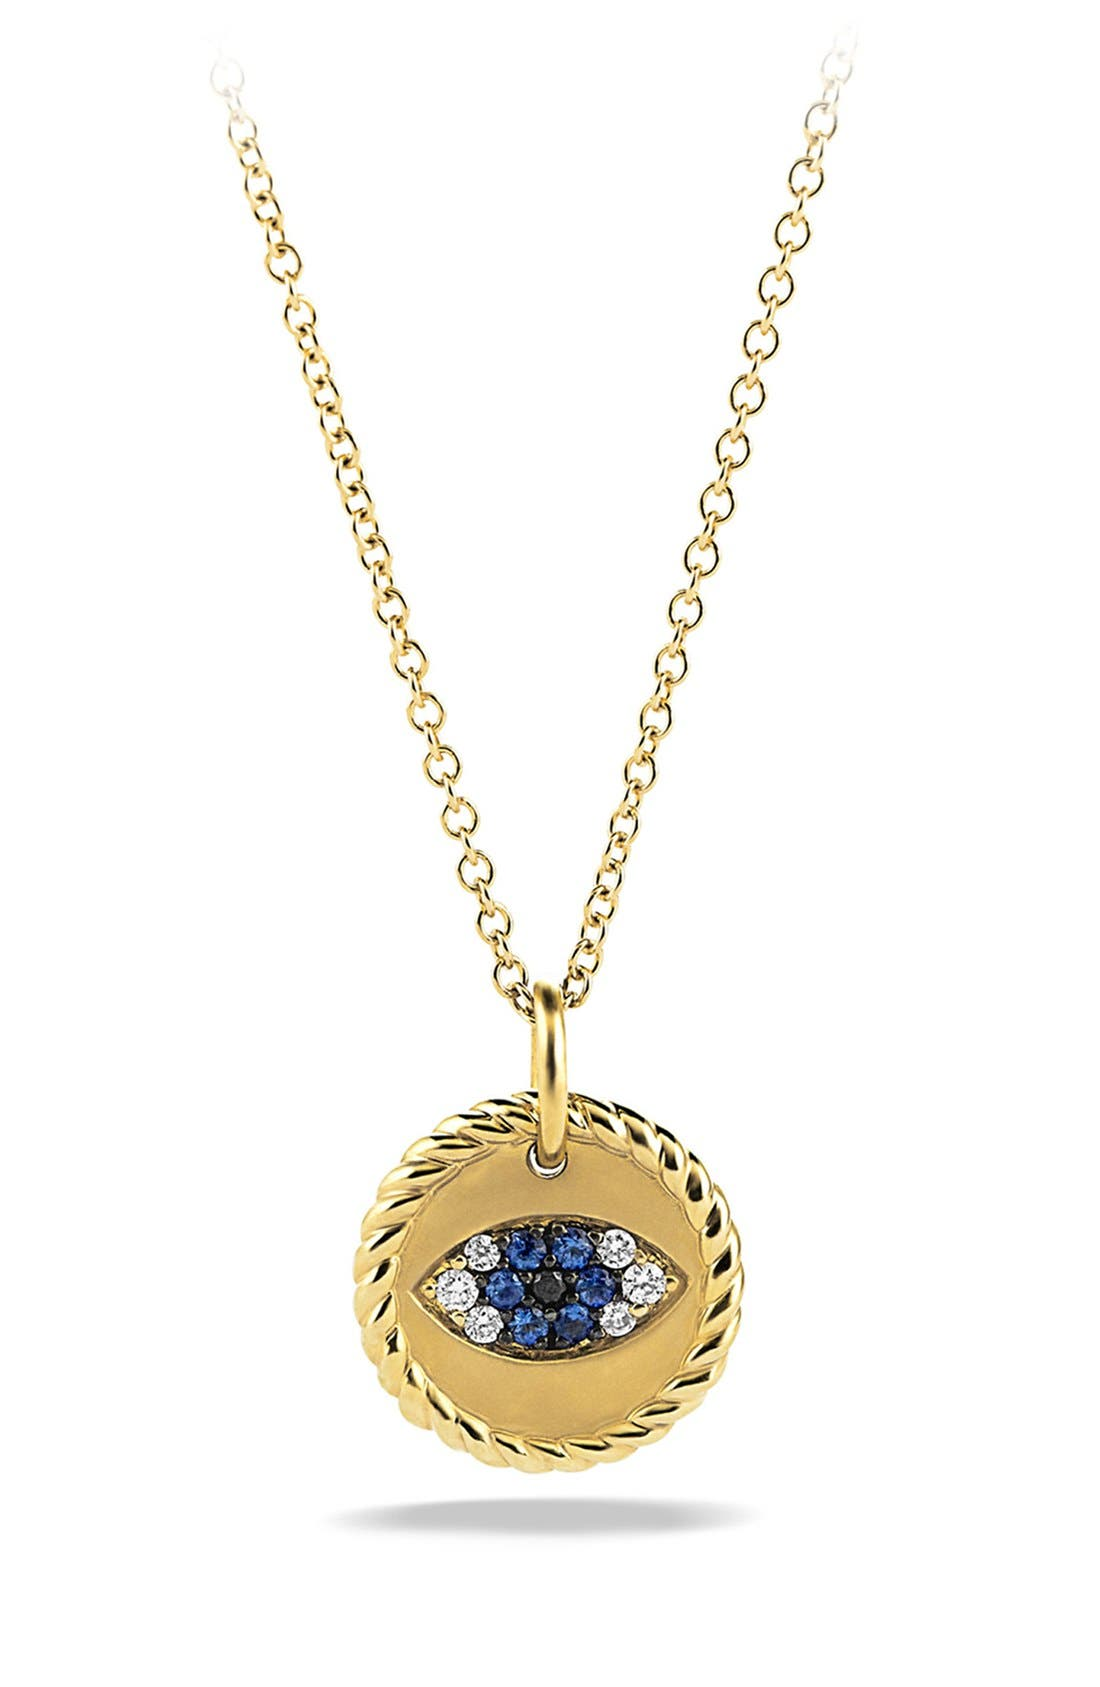 DAVID YURMAN 'Cable Collectibles' Evil Eye Charm Necklace with Blue Sapphire, Black Diamonds and Diamonds in Gold, Main, color, BLUE SAPPHIRE/ DIAMOND